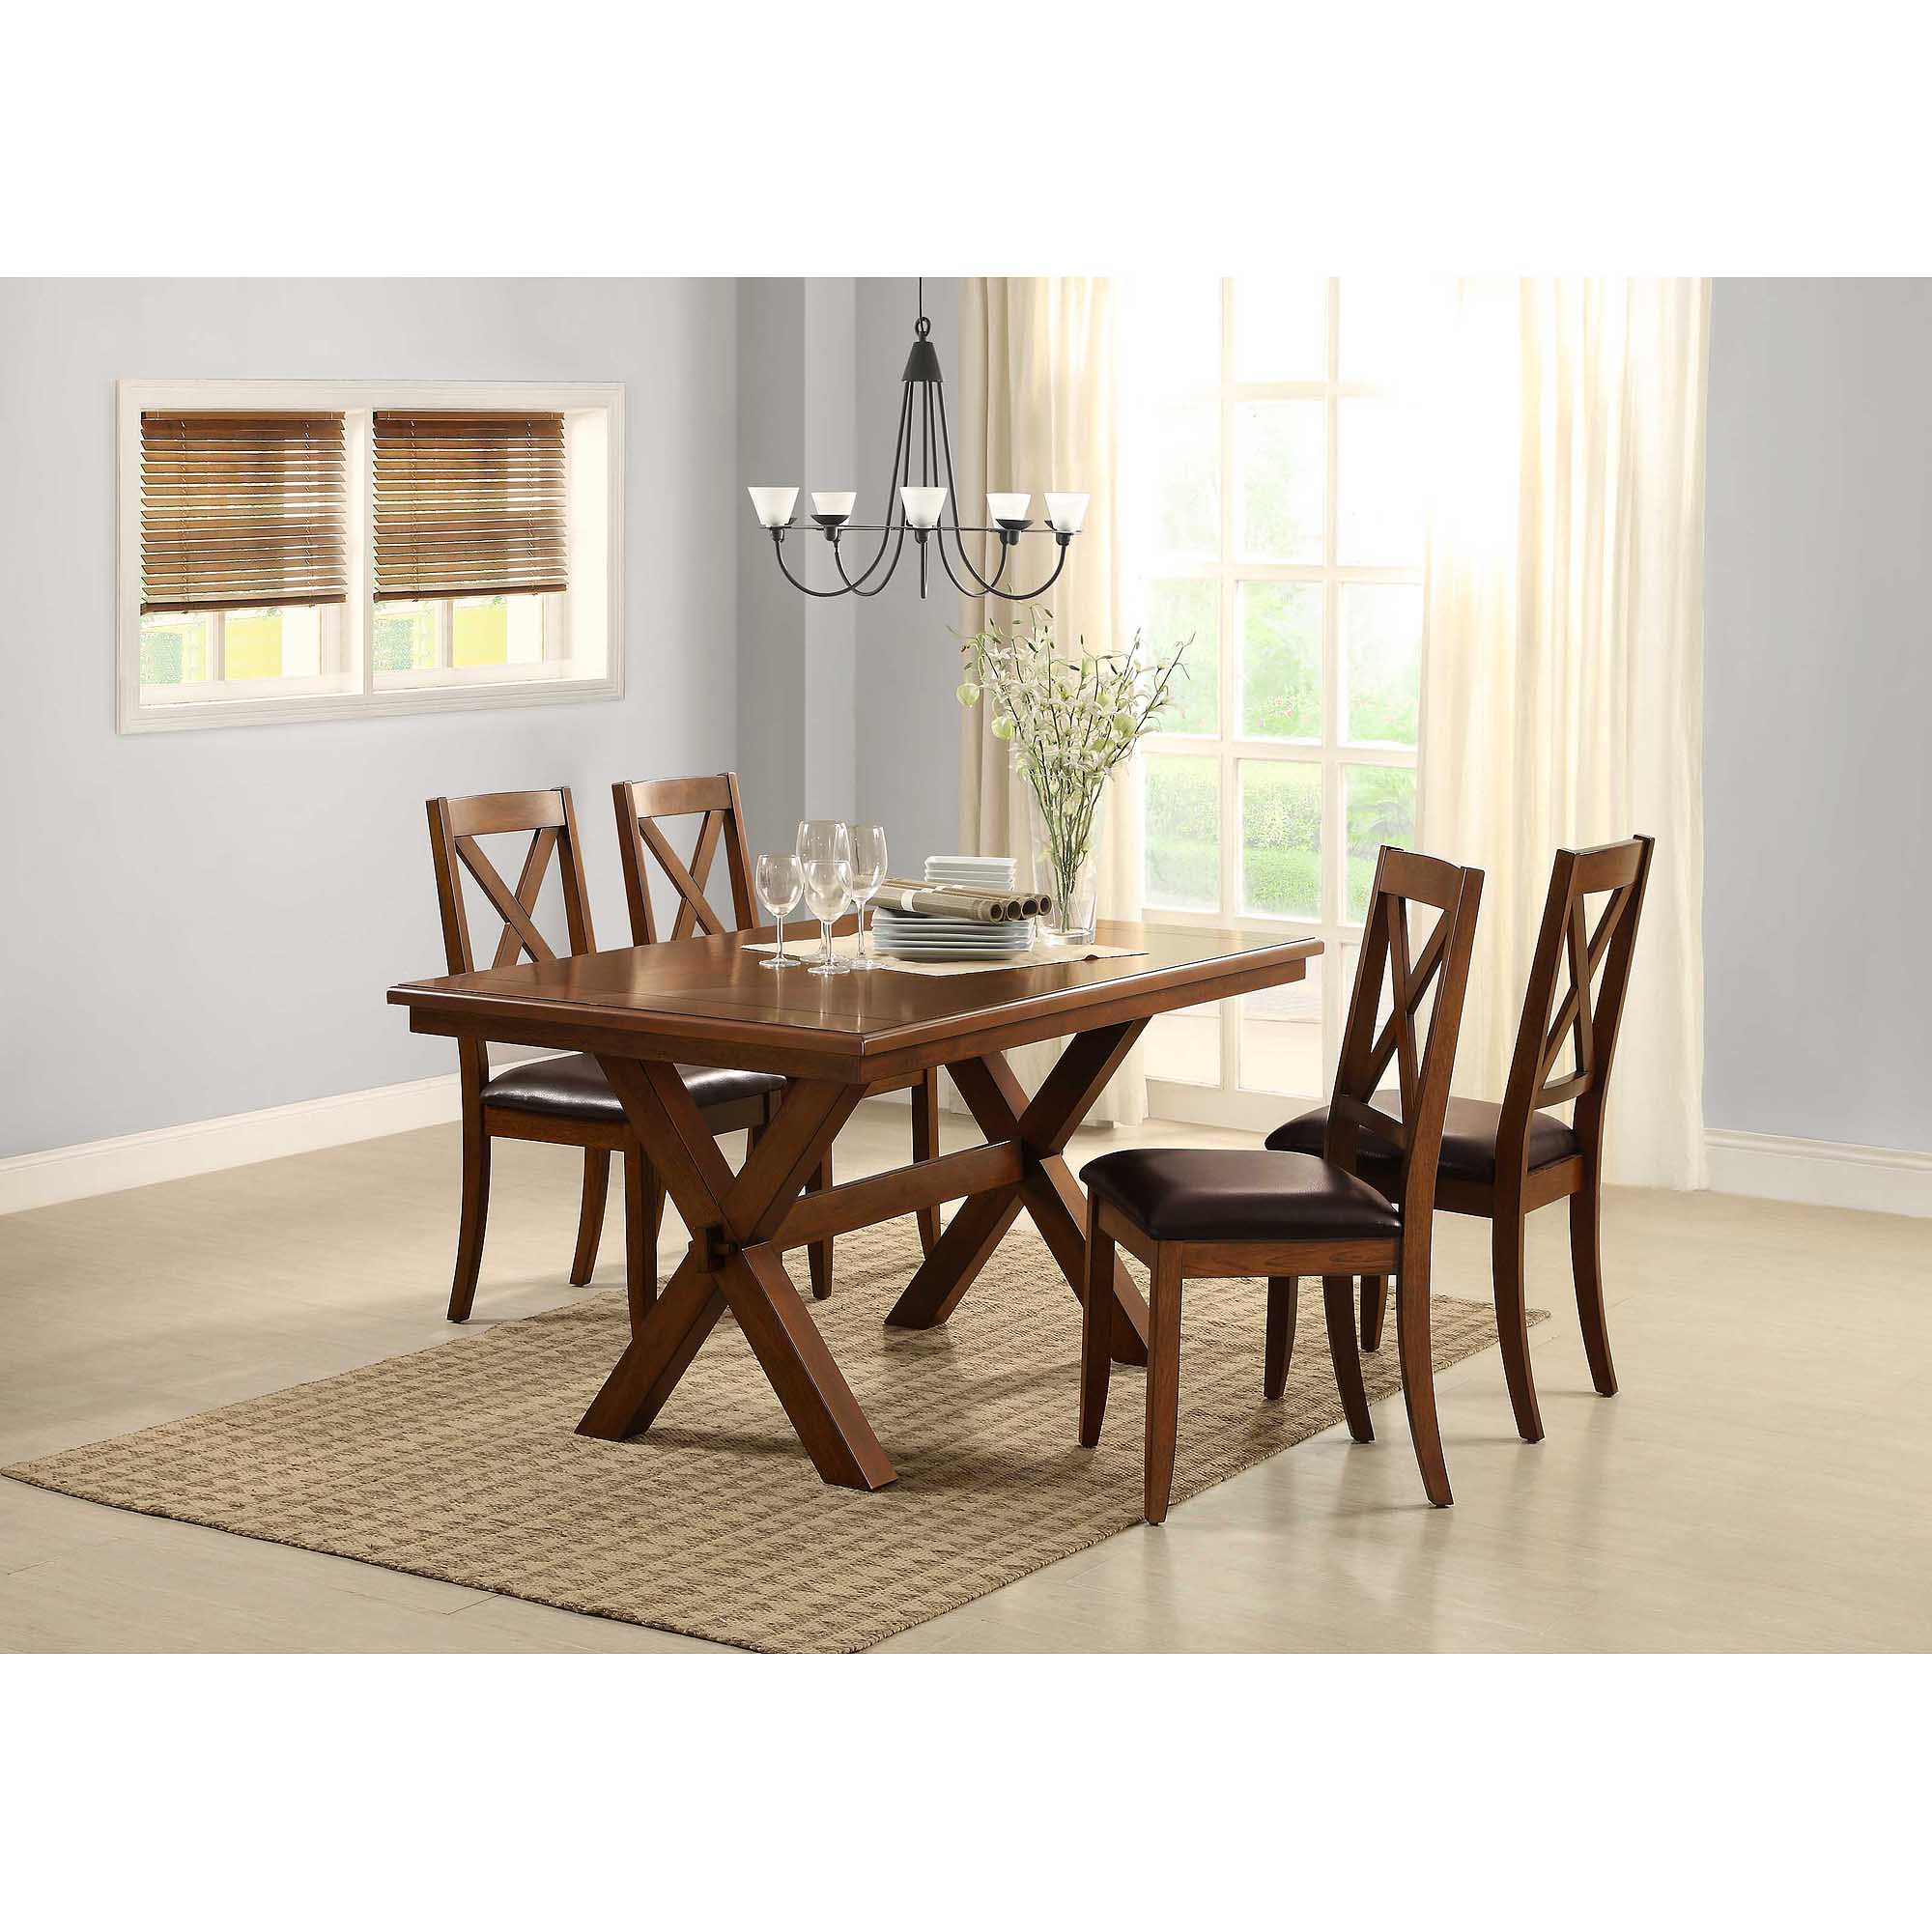 Better homes gardens maddox crossing dining table brown walmart com